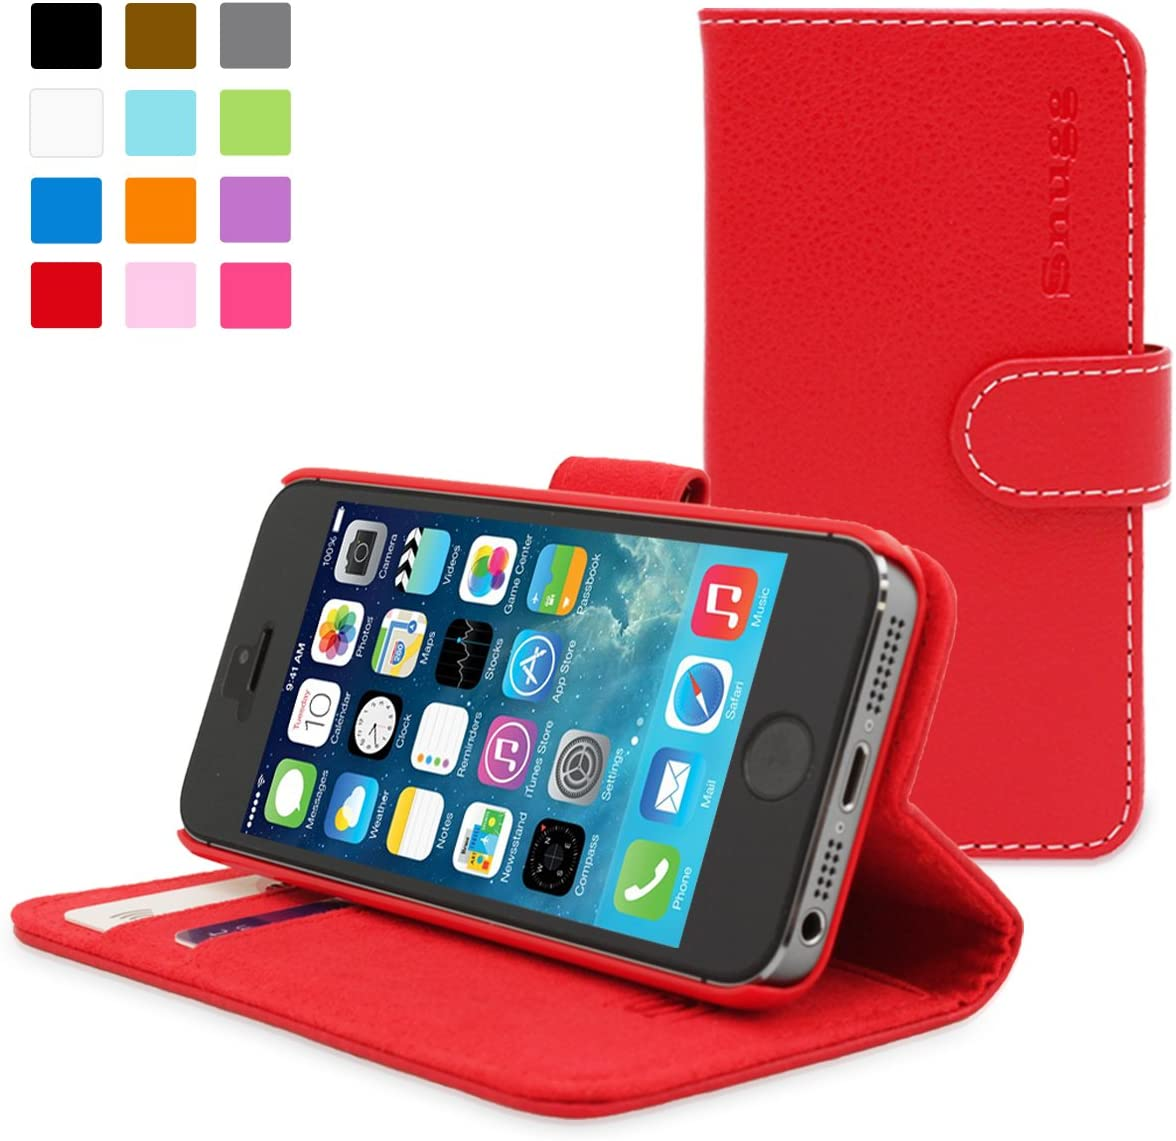 iPhone 5 / 5s Case, Snugg - Red Leather iPhone 5/5s Flip Case Premium Wallet Phone Cover with Card Slots for Apple iPhone 5 / 5s